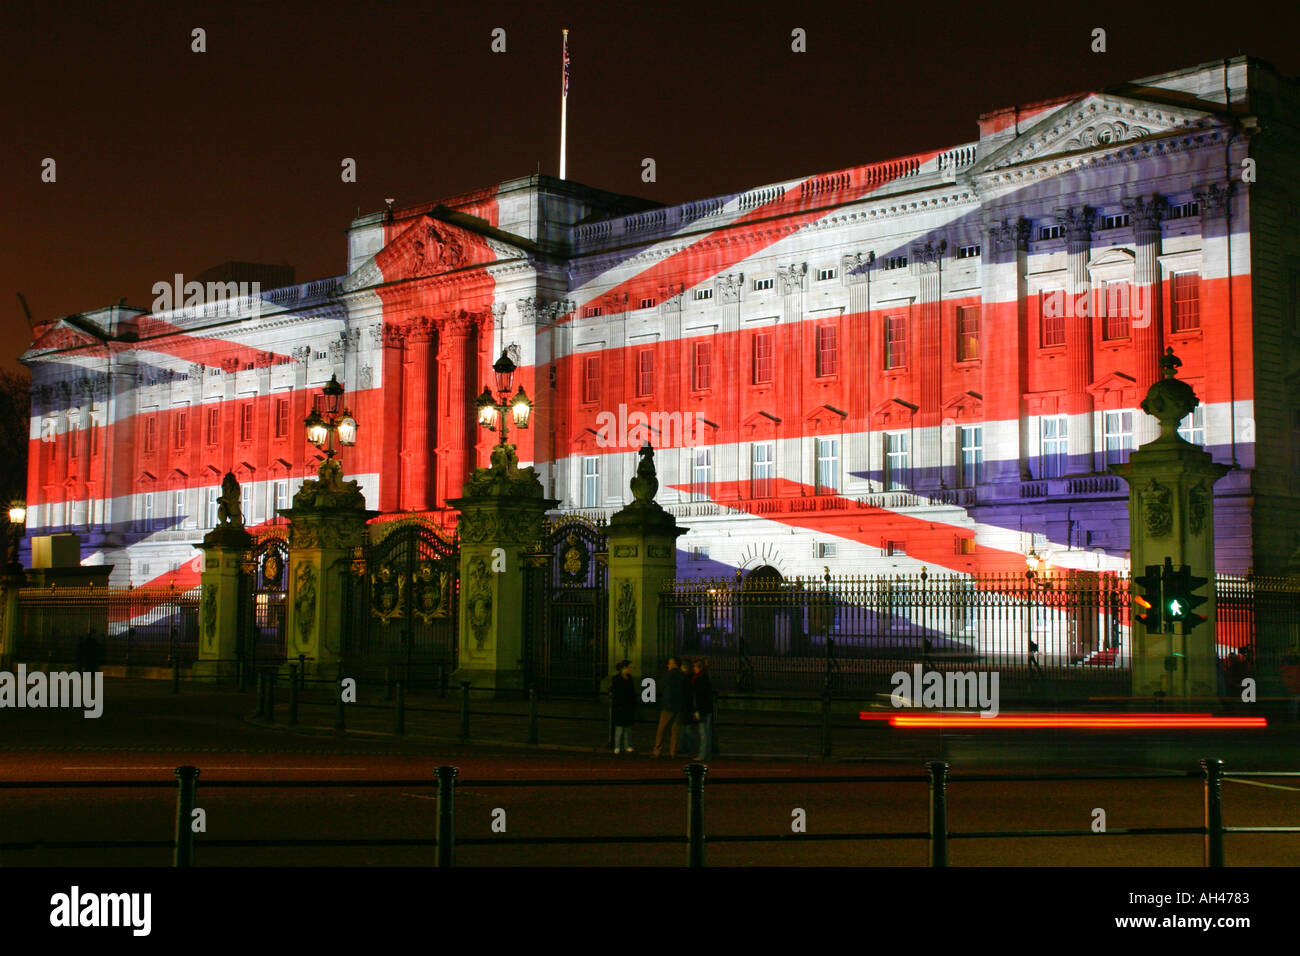 Projection Mapping Uk Projection Mapping Stock Photos & Projection Mapping Stock Images